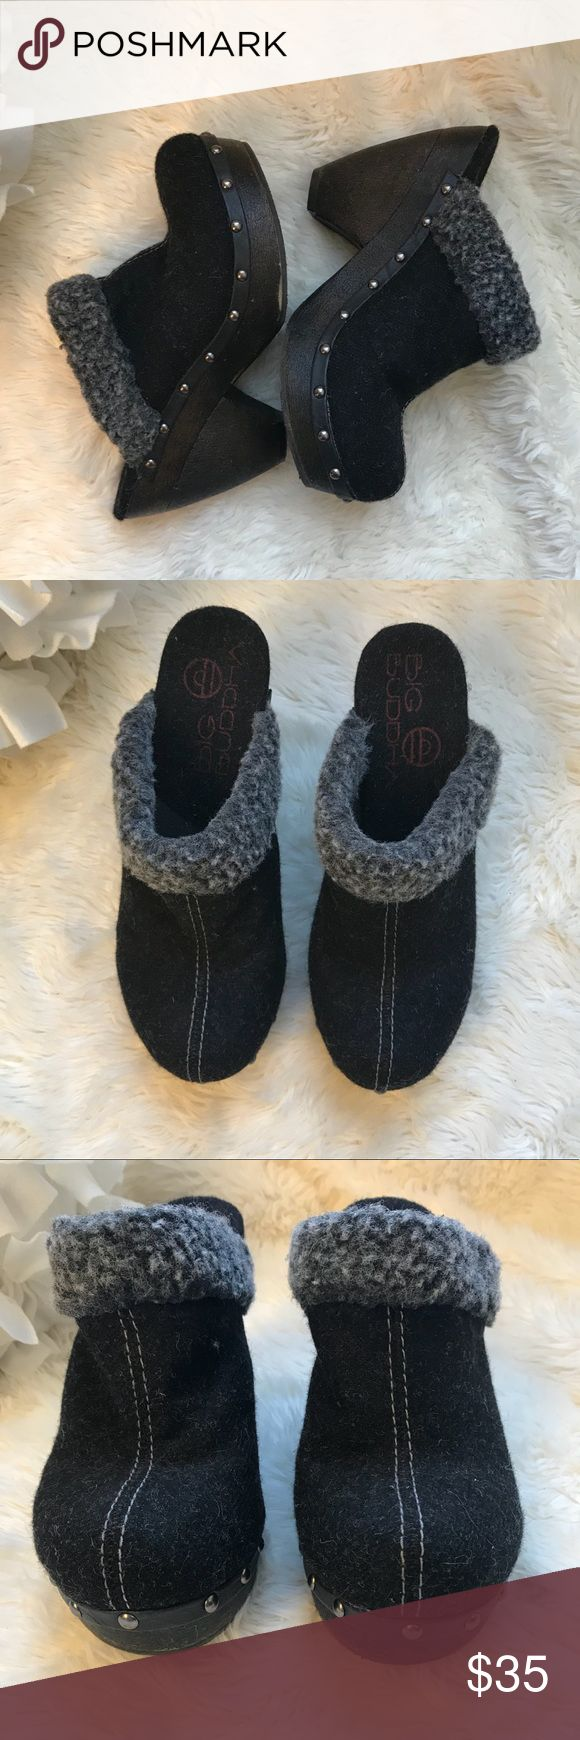 Big Buddha Clogs Viva Charcoal Gray Faux Fur Trim Big Buddha Viva Clogs Size 8 Charcoal dark gray Fabric upper Faux shearling trim Studs around sides and front Open back Big Buddha Shoes Mules & Clogs